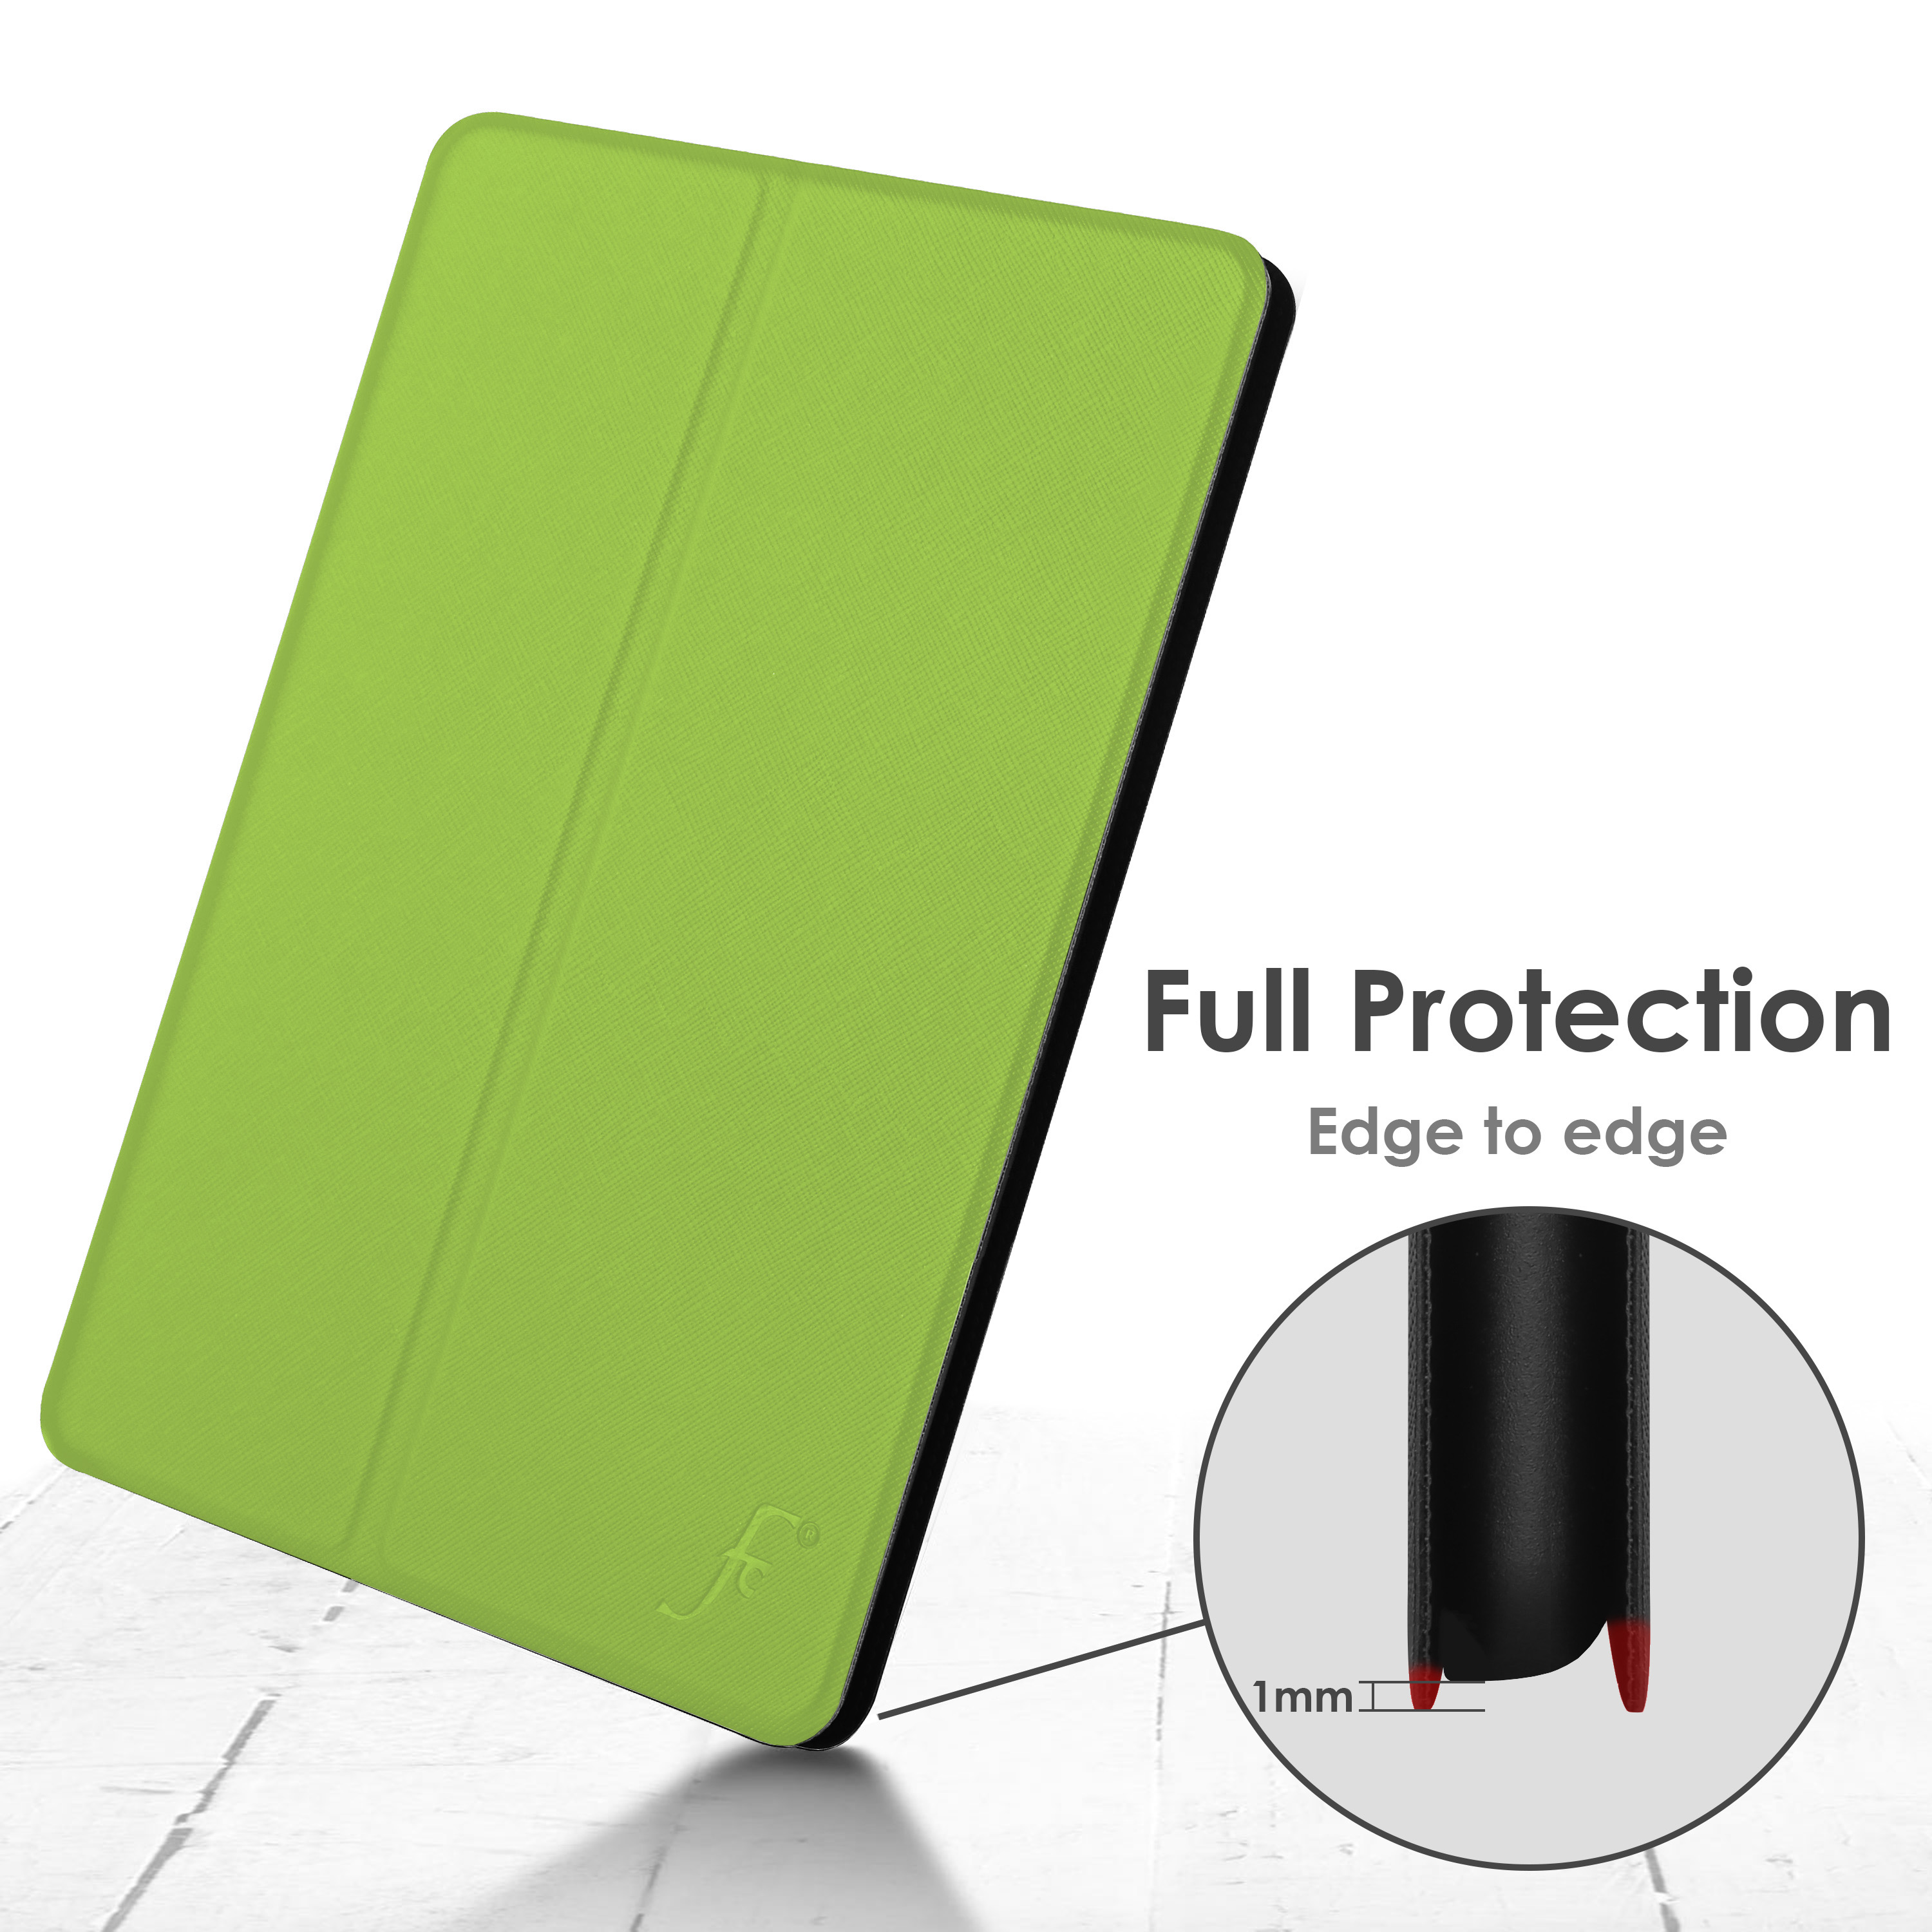 miniature 30 - Samsung Galaxy Tab A 10.1 2019 Étui Magnétique Protection & Support + Stylet